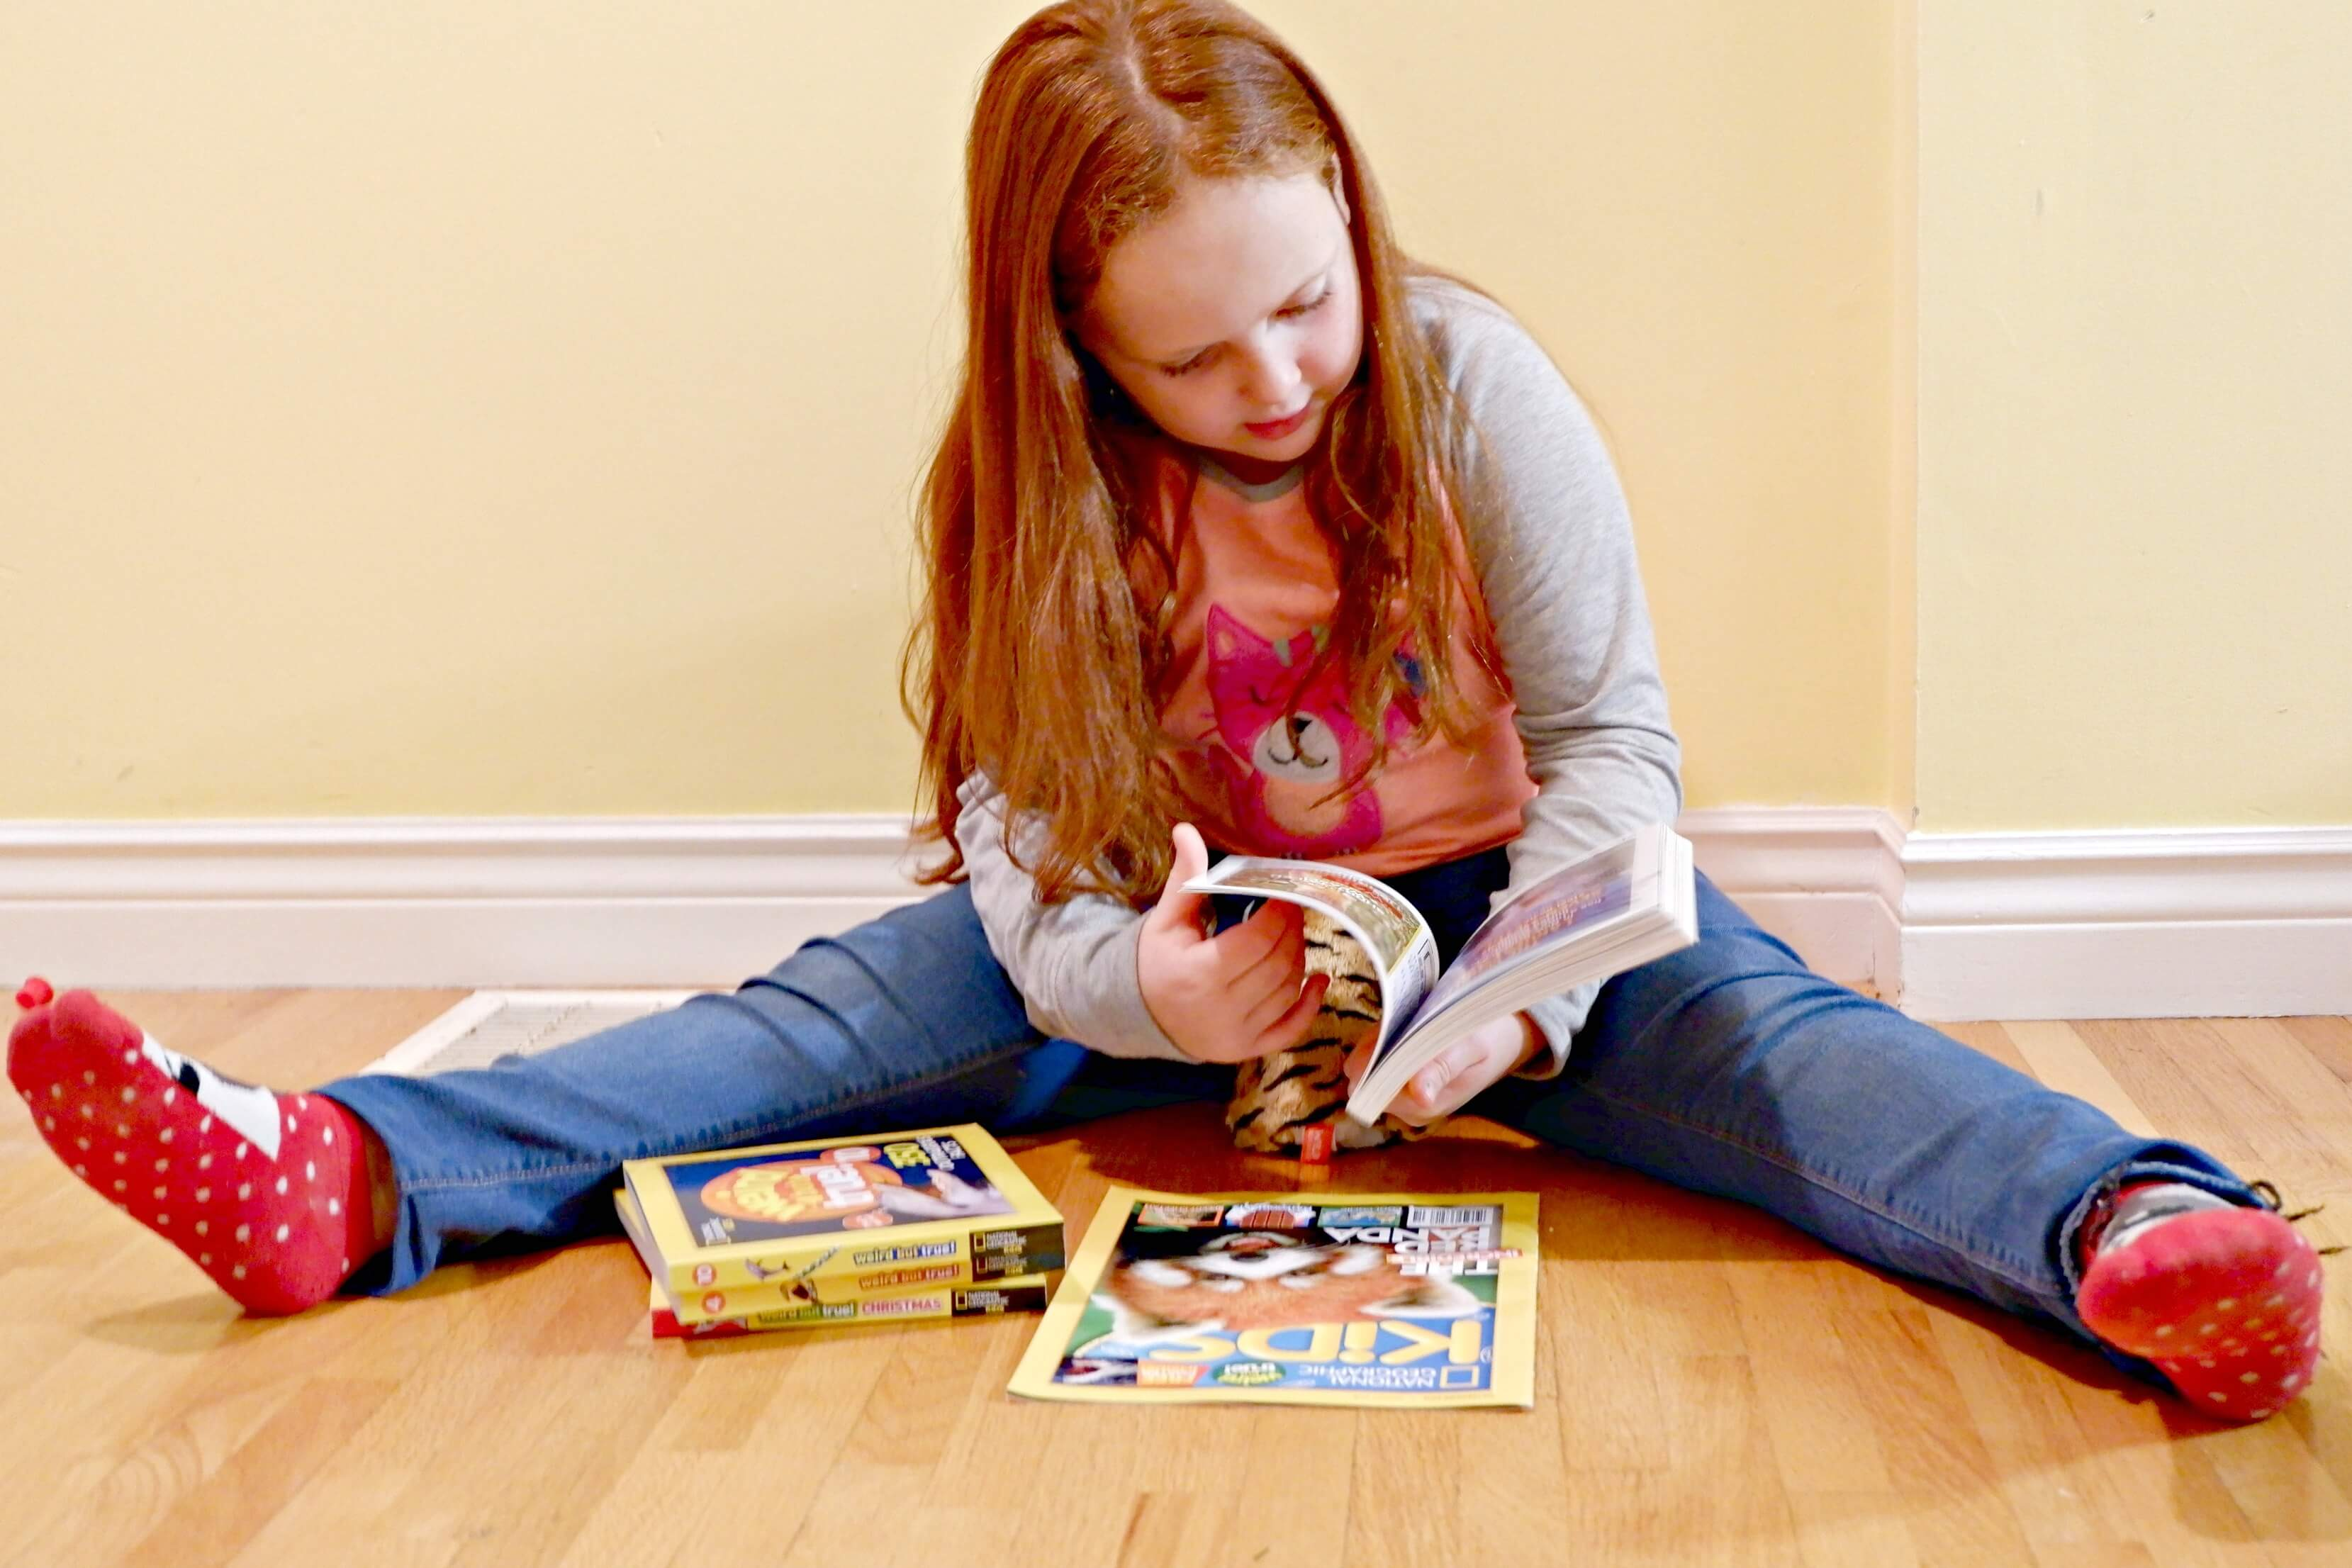 young girl reading books national geographic canada facts book weird but true early reader pickle planet